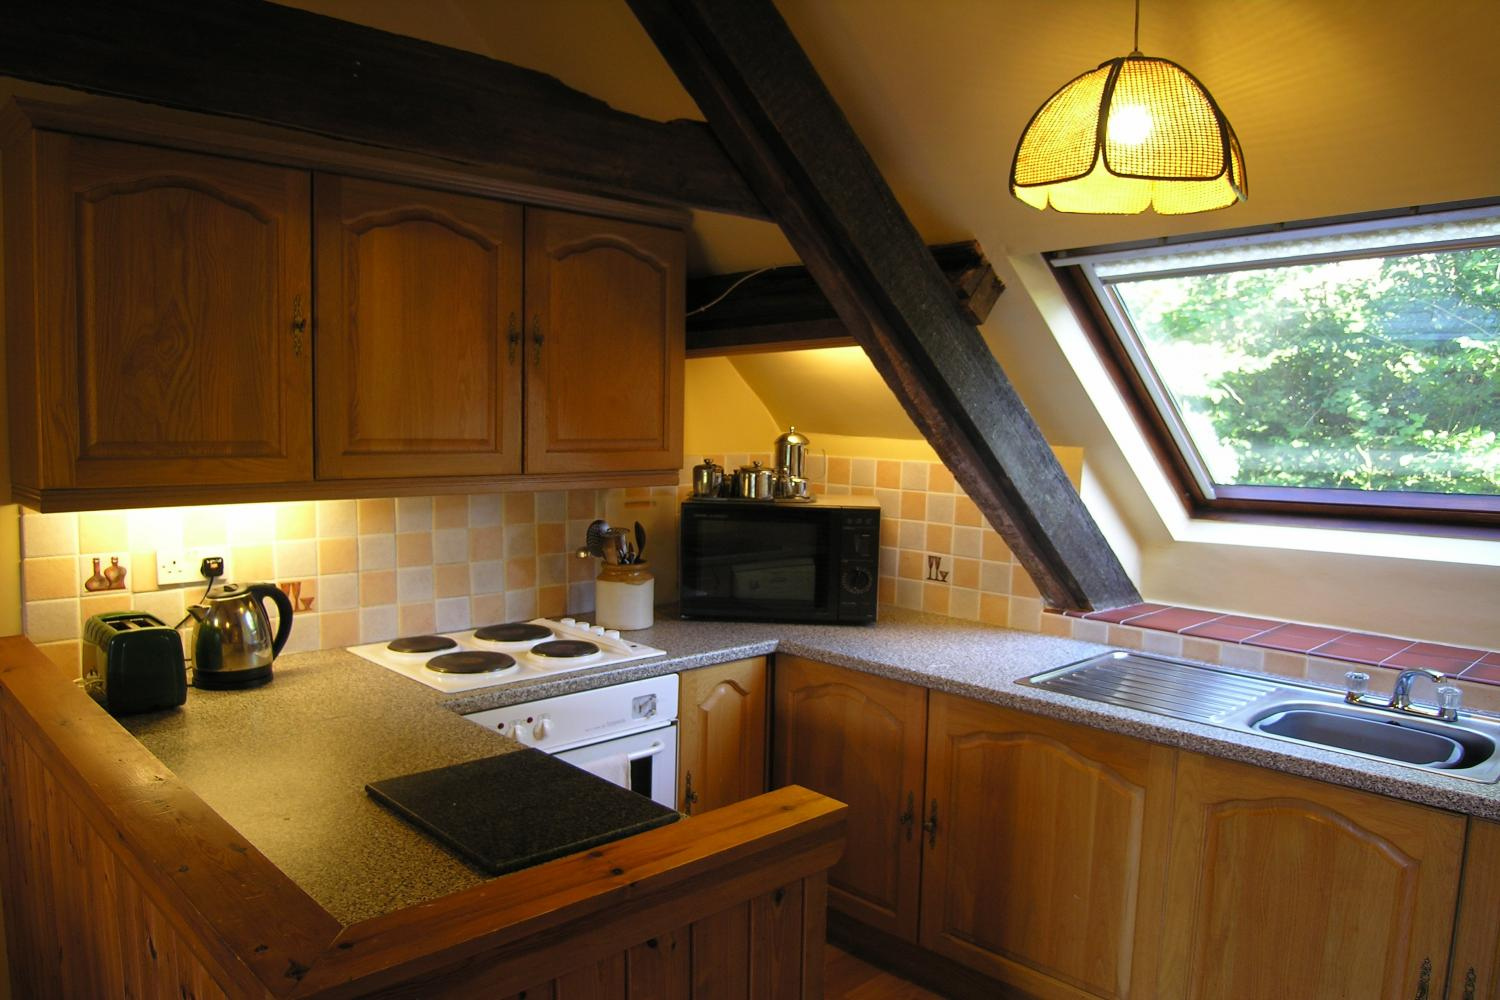 Winsford Kitchen